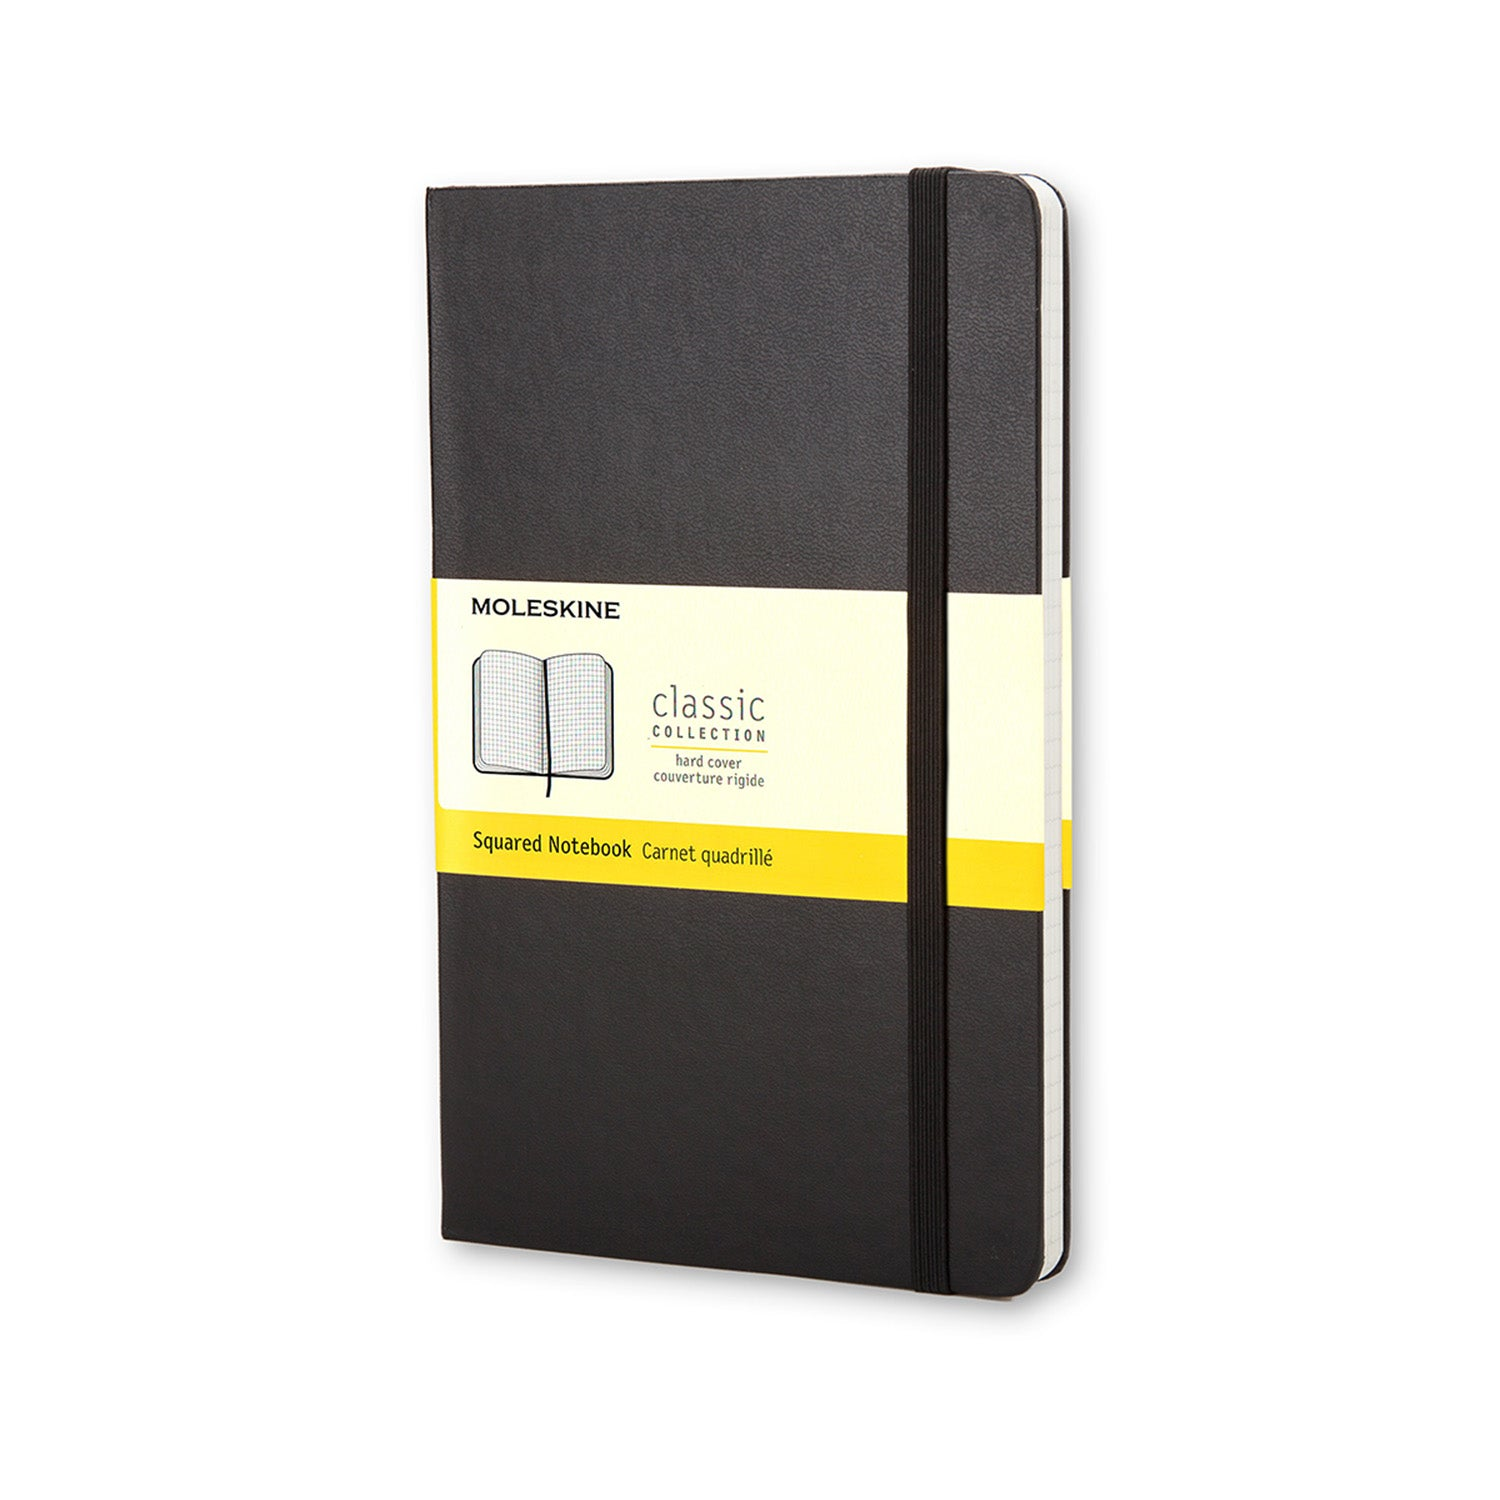 Moleskine Classic Hard Cover Notebook Large SQUARED Black